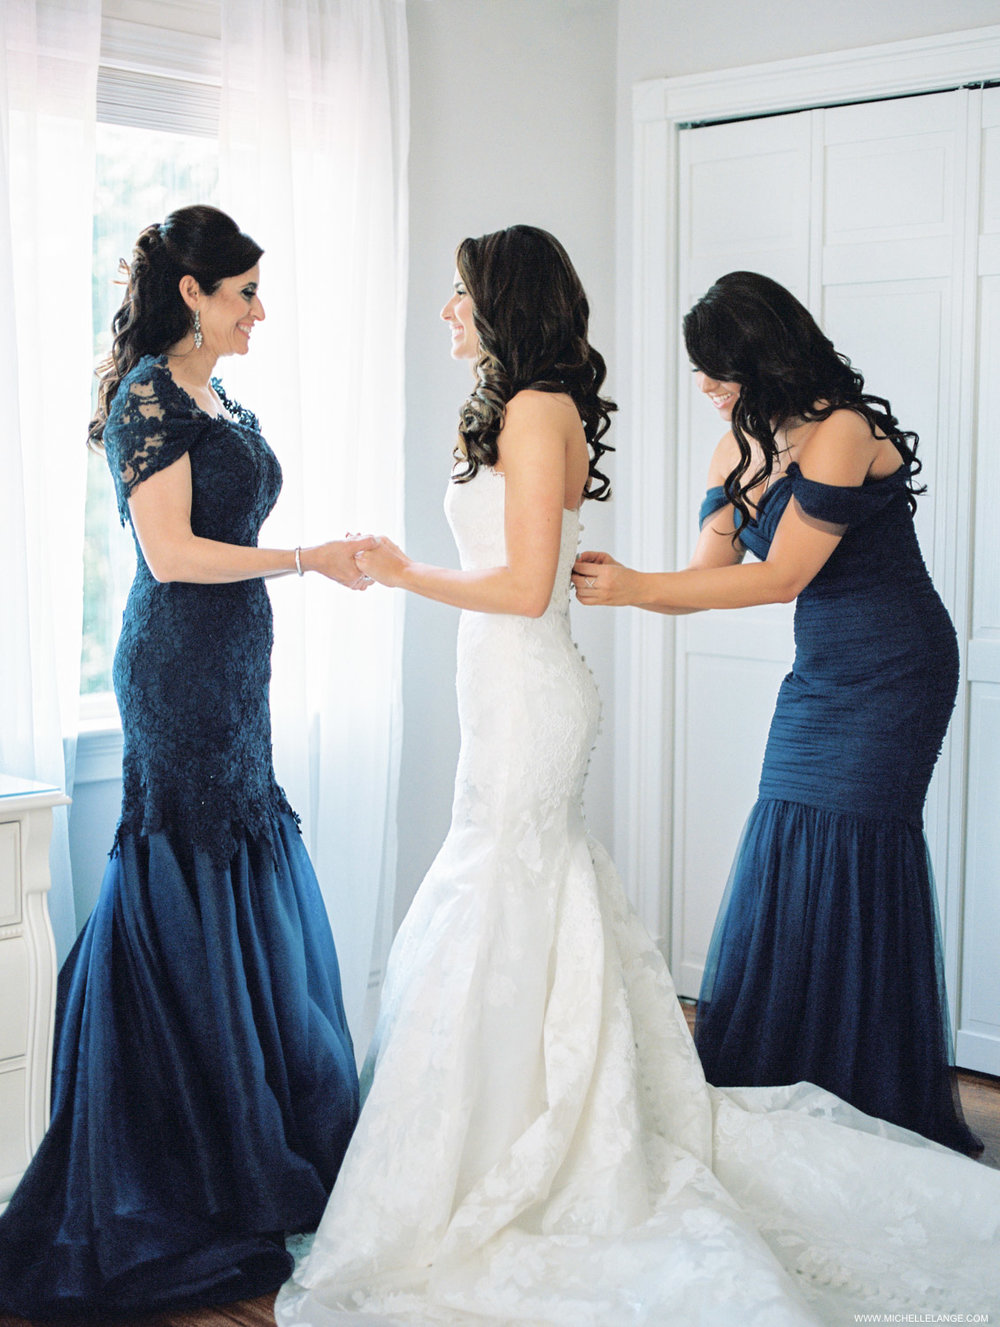 Bride with mom and maid of honor getting ready